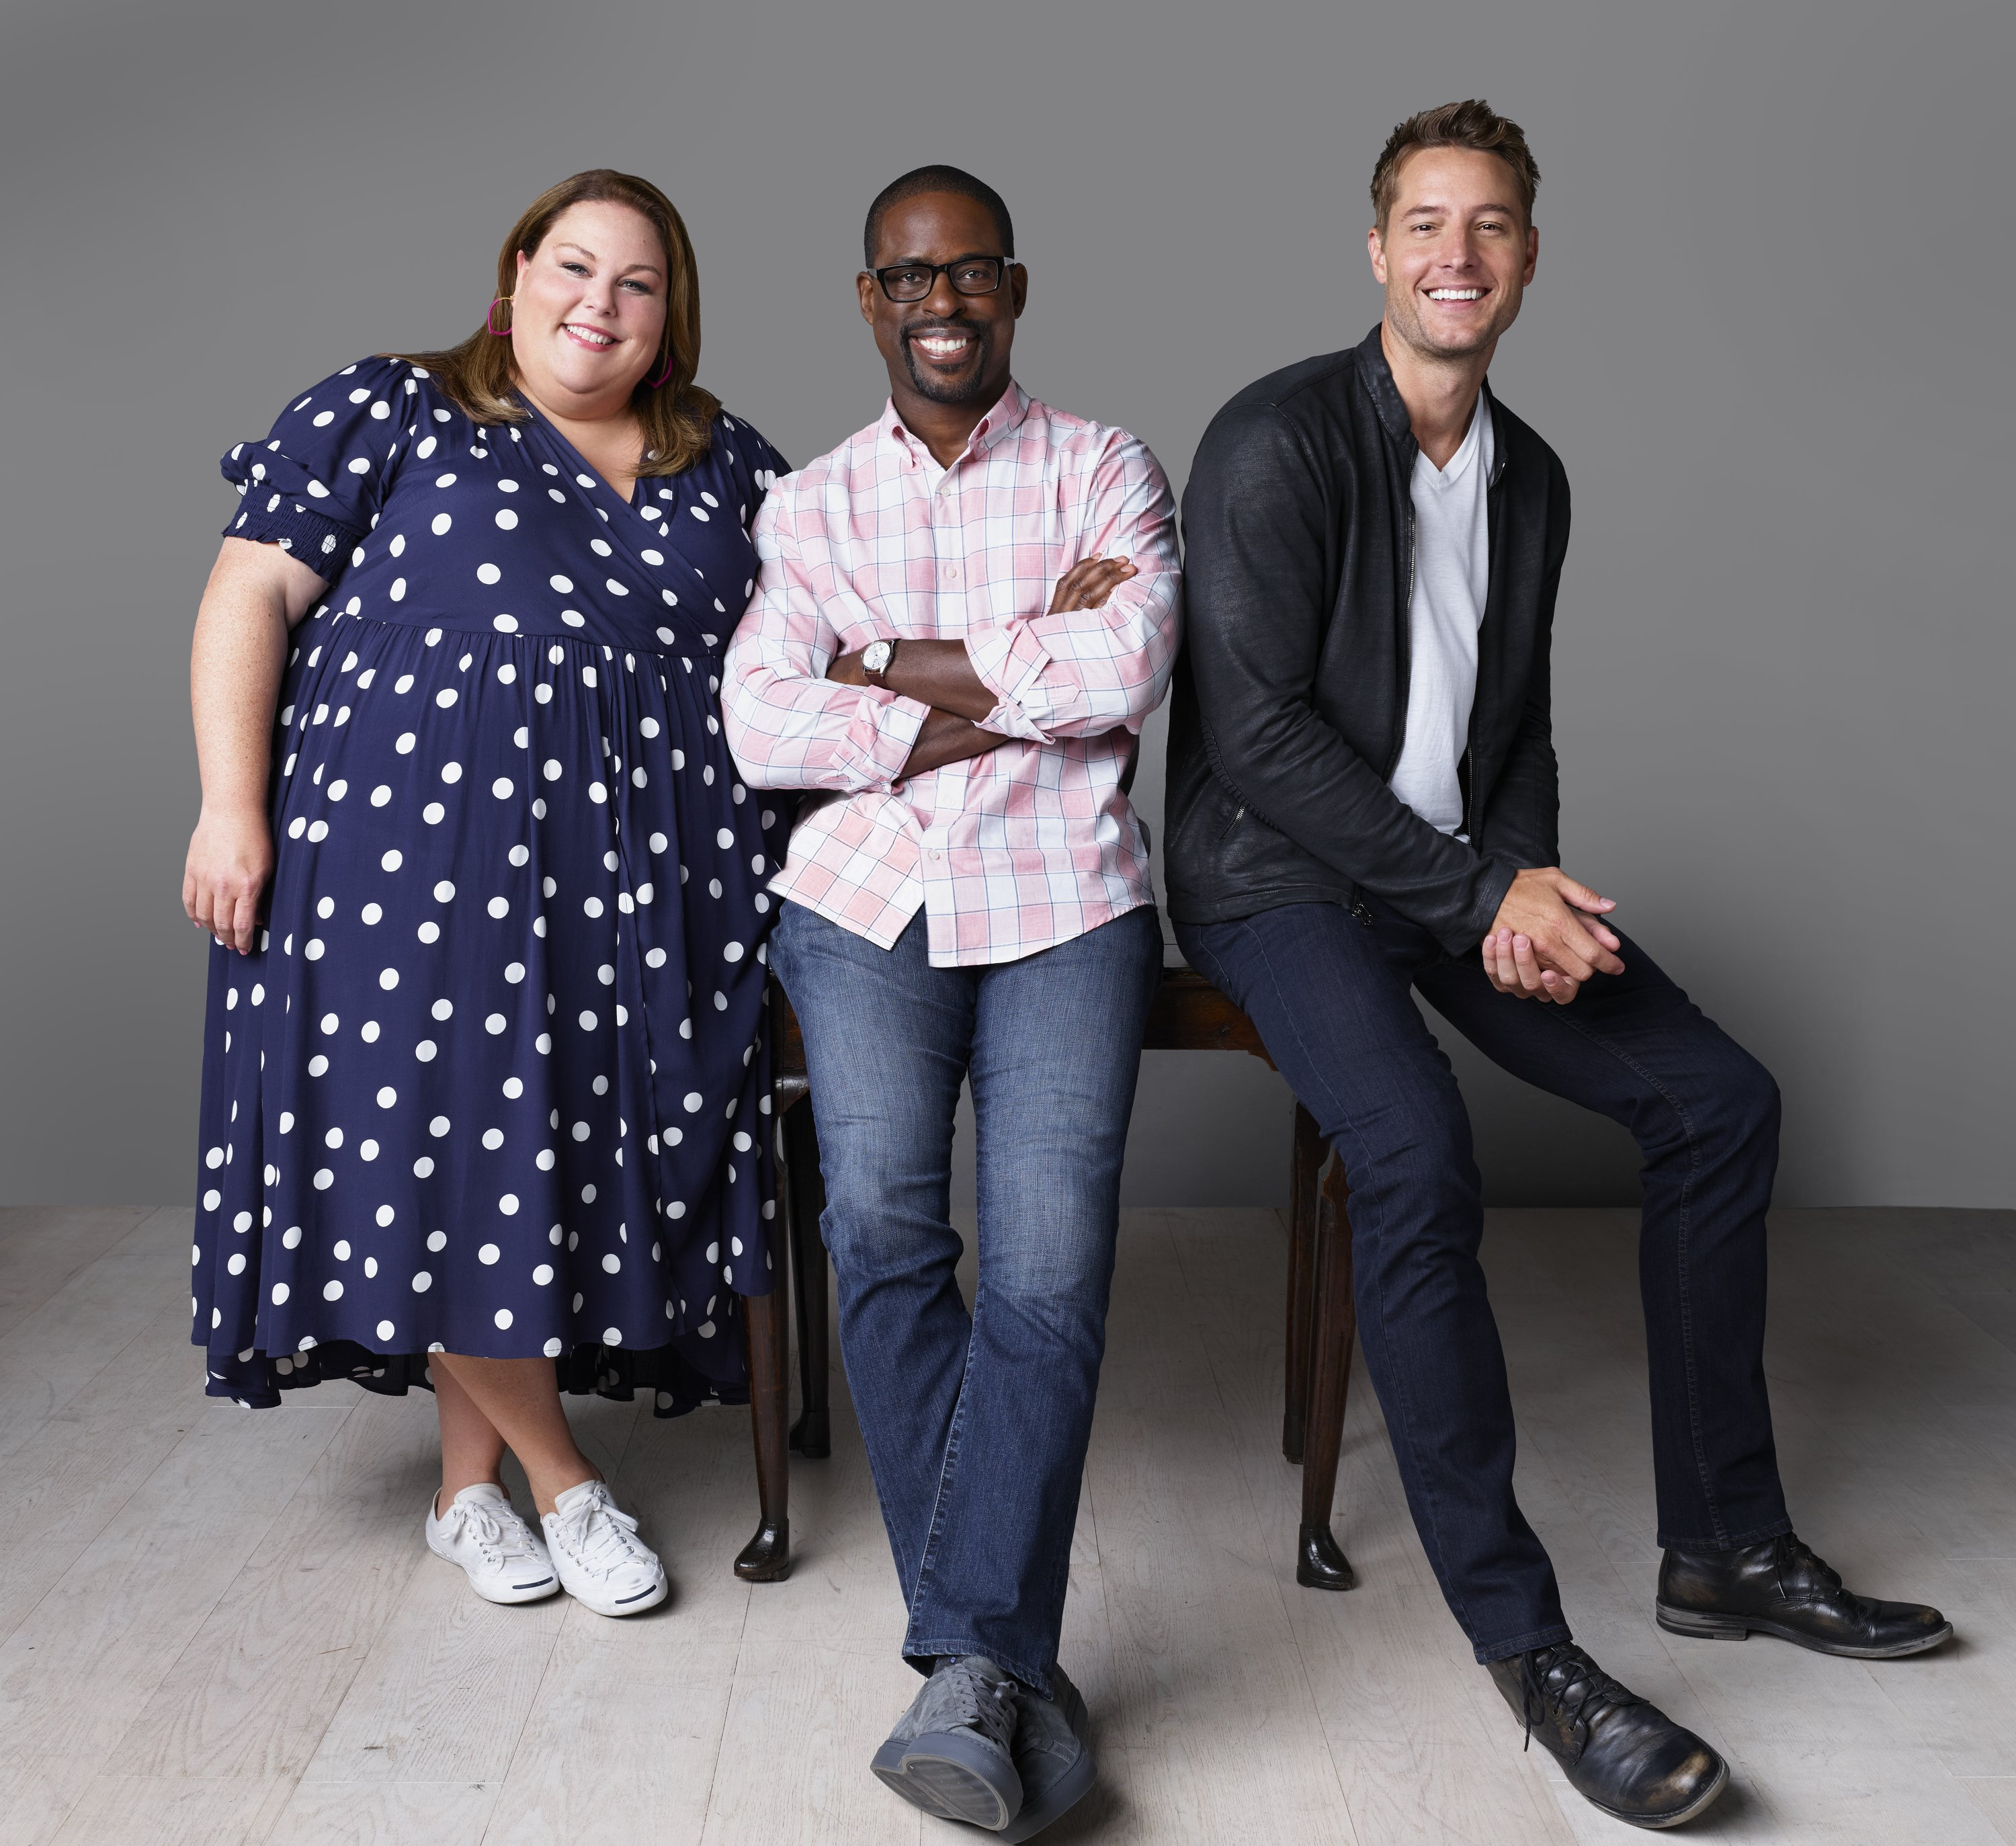 THIS IS US -- Season: 4 -- Pictured: (l-r) Chrissy Metz as Kate Pearson, Sterling K. Brown as Randall Pearson, Justin Hartley as Kevin Pearson | Photo: GettyImages